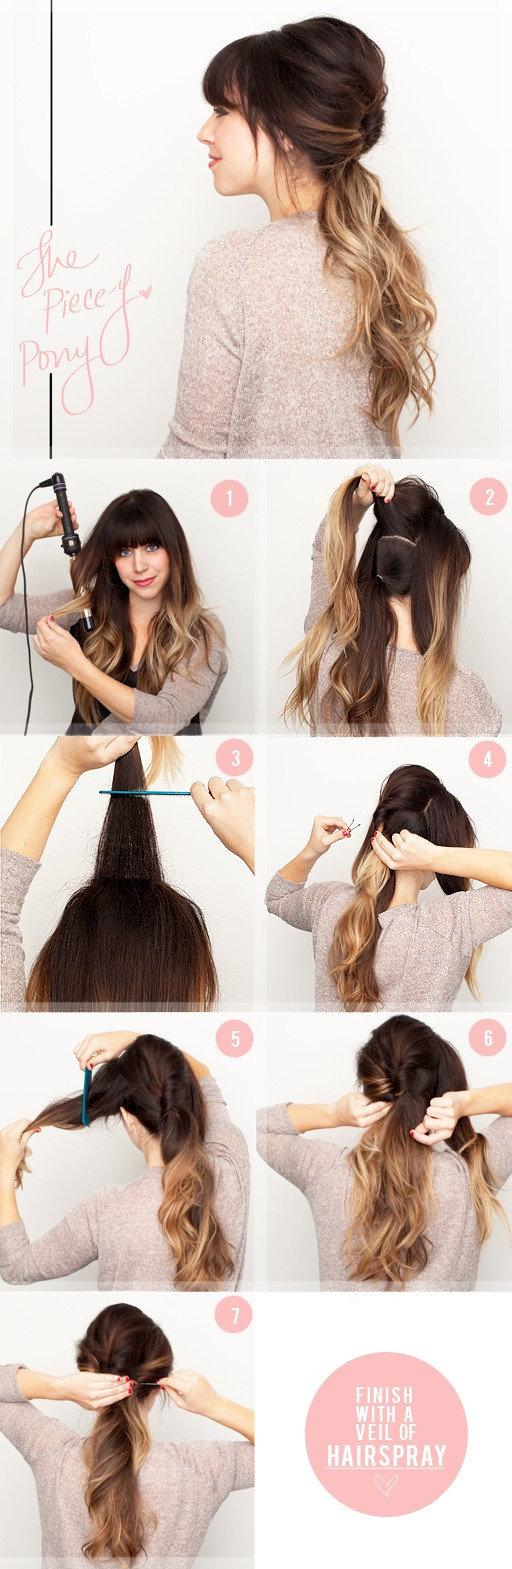 Simple 47 Super Cute Hairstyles For Girls With Pictures  Beautified Designs